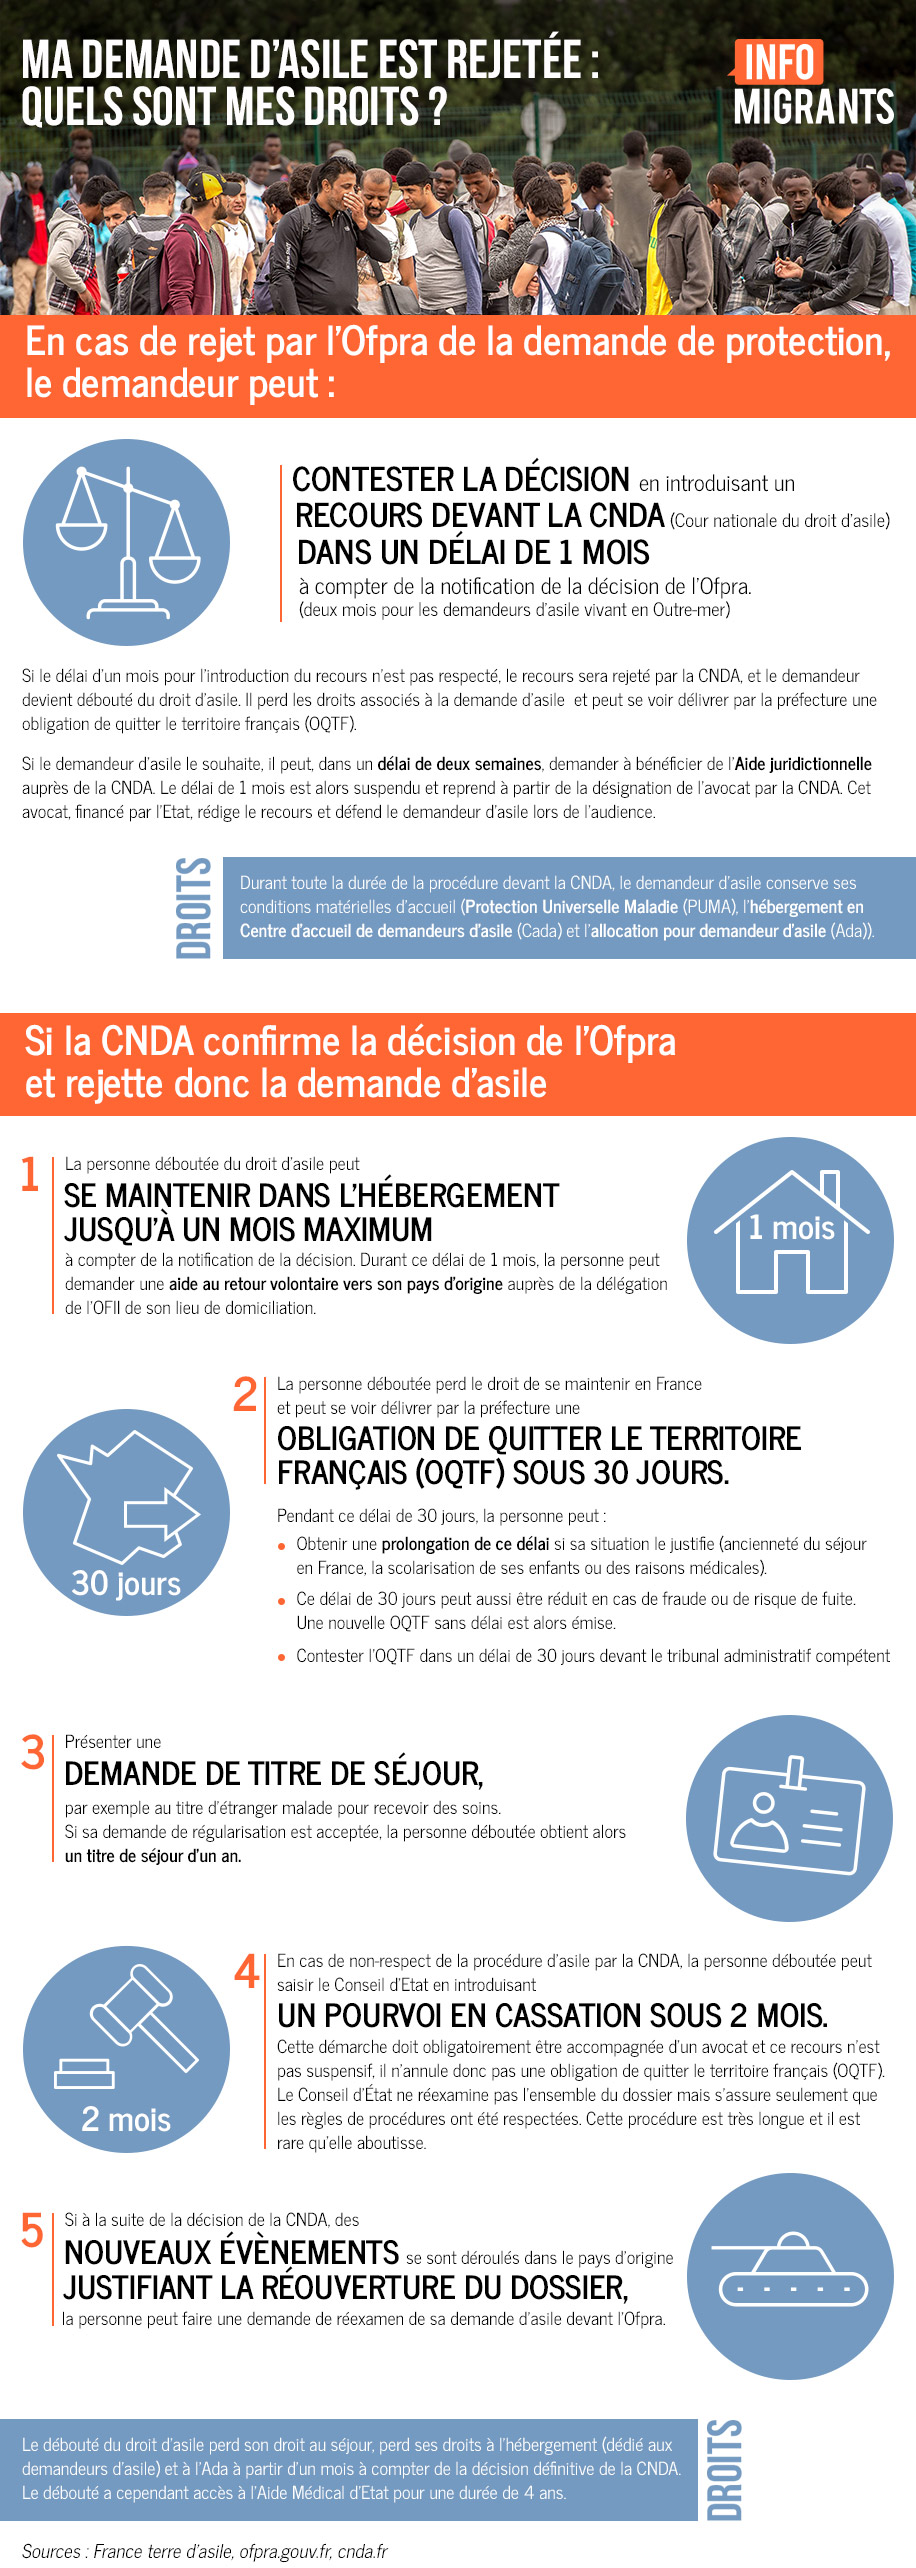 infographie demandes asile refusees